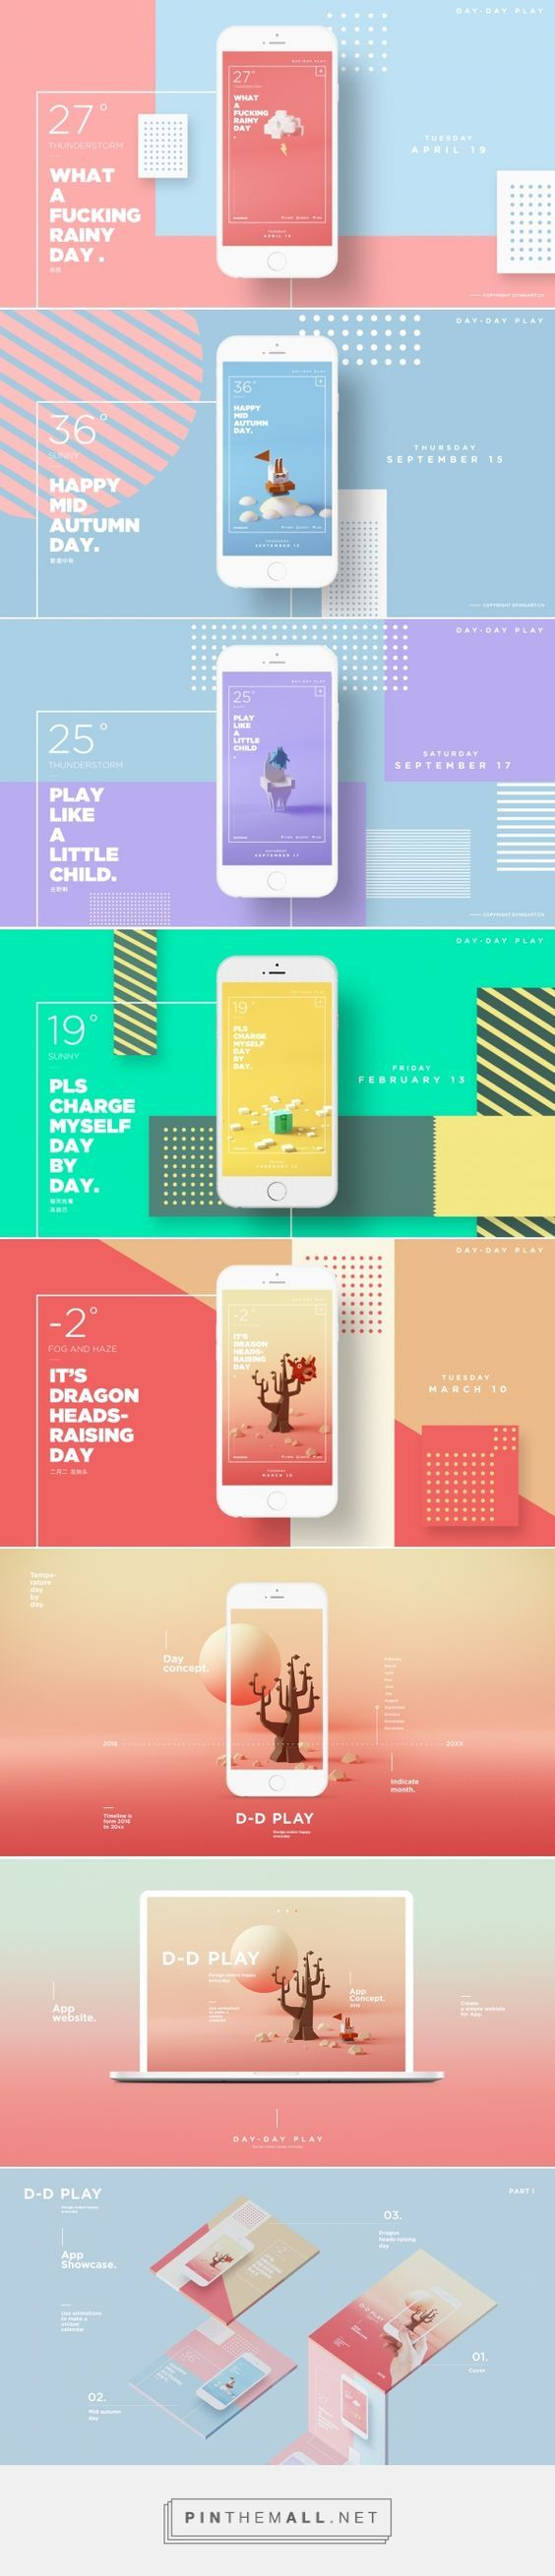 Best 20 Pattern Background Ideas On Pinterest Free Background Images Graphic Design Pattern